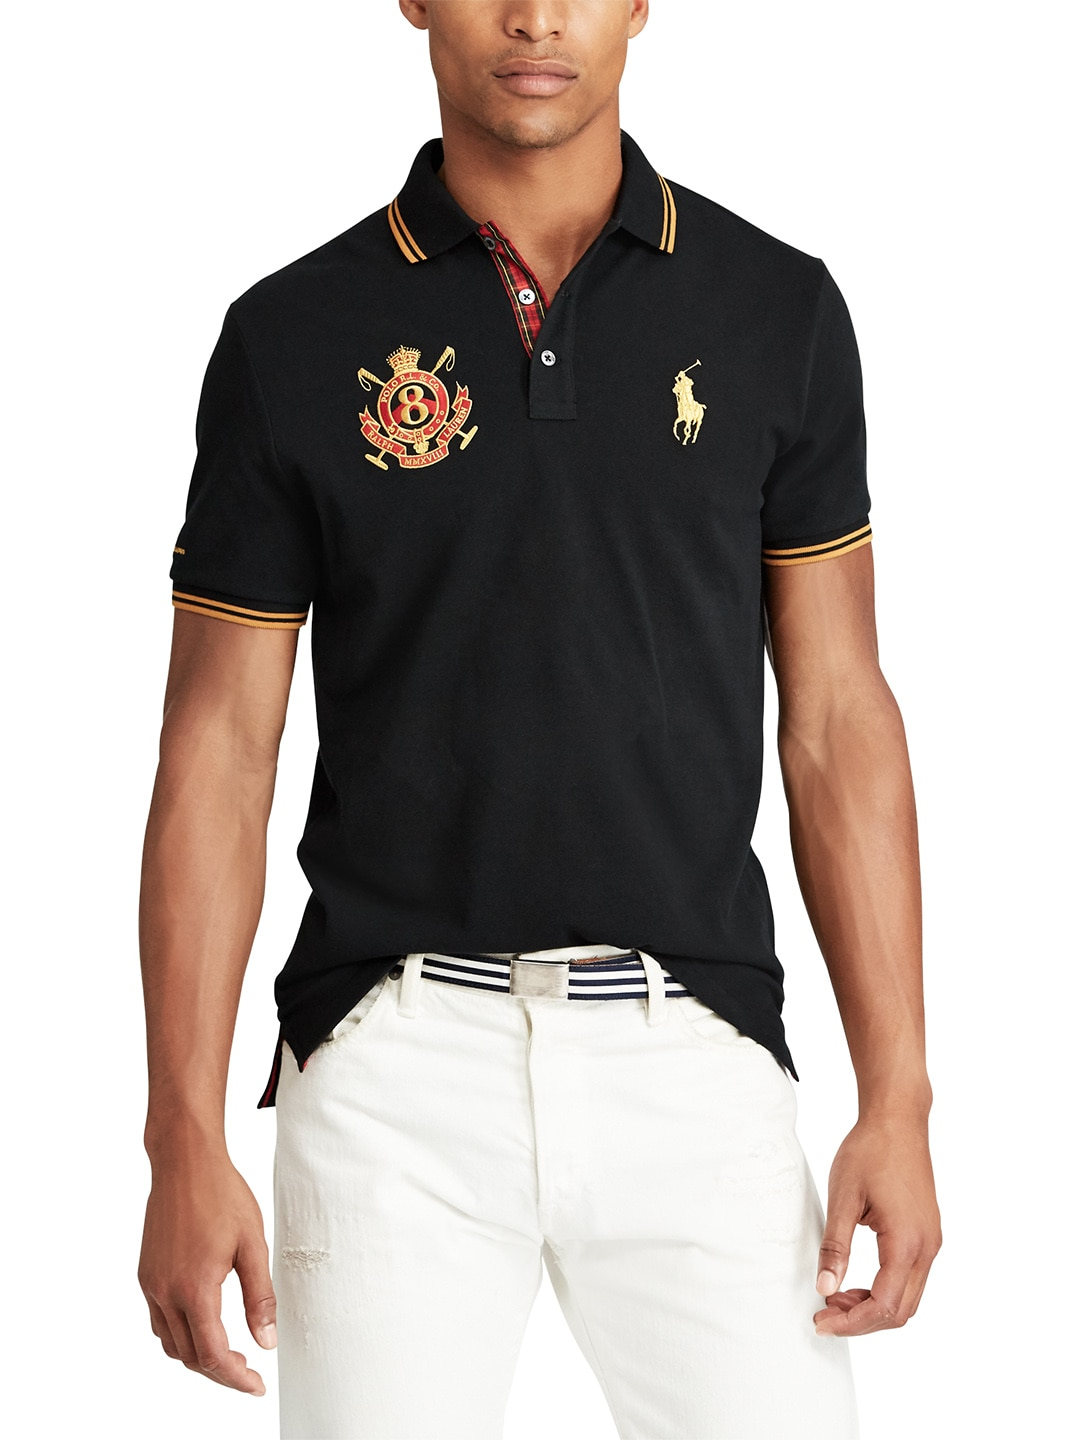 3c81294a Buy Polo Ralph Lauren Classic Fit Mesh Polo Shirt - Tshirts for Men ...